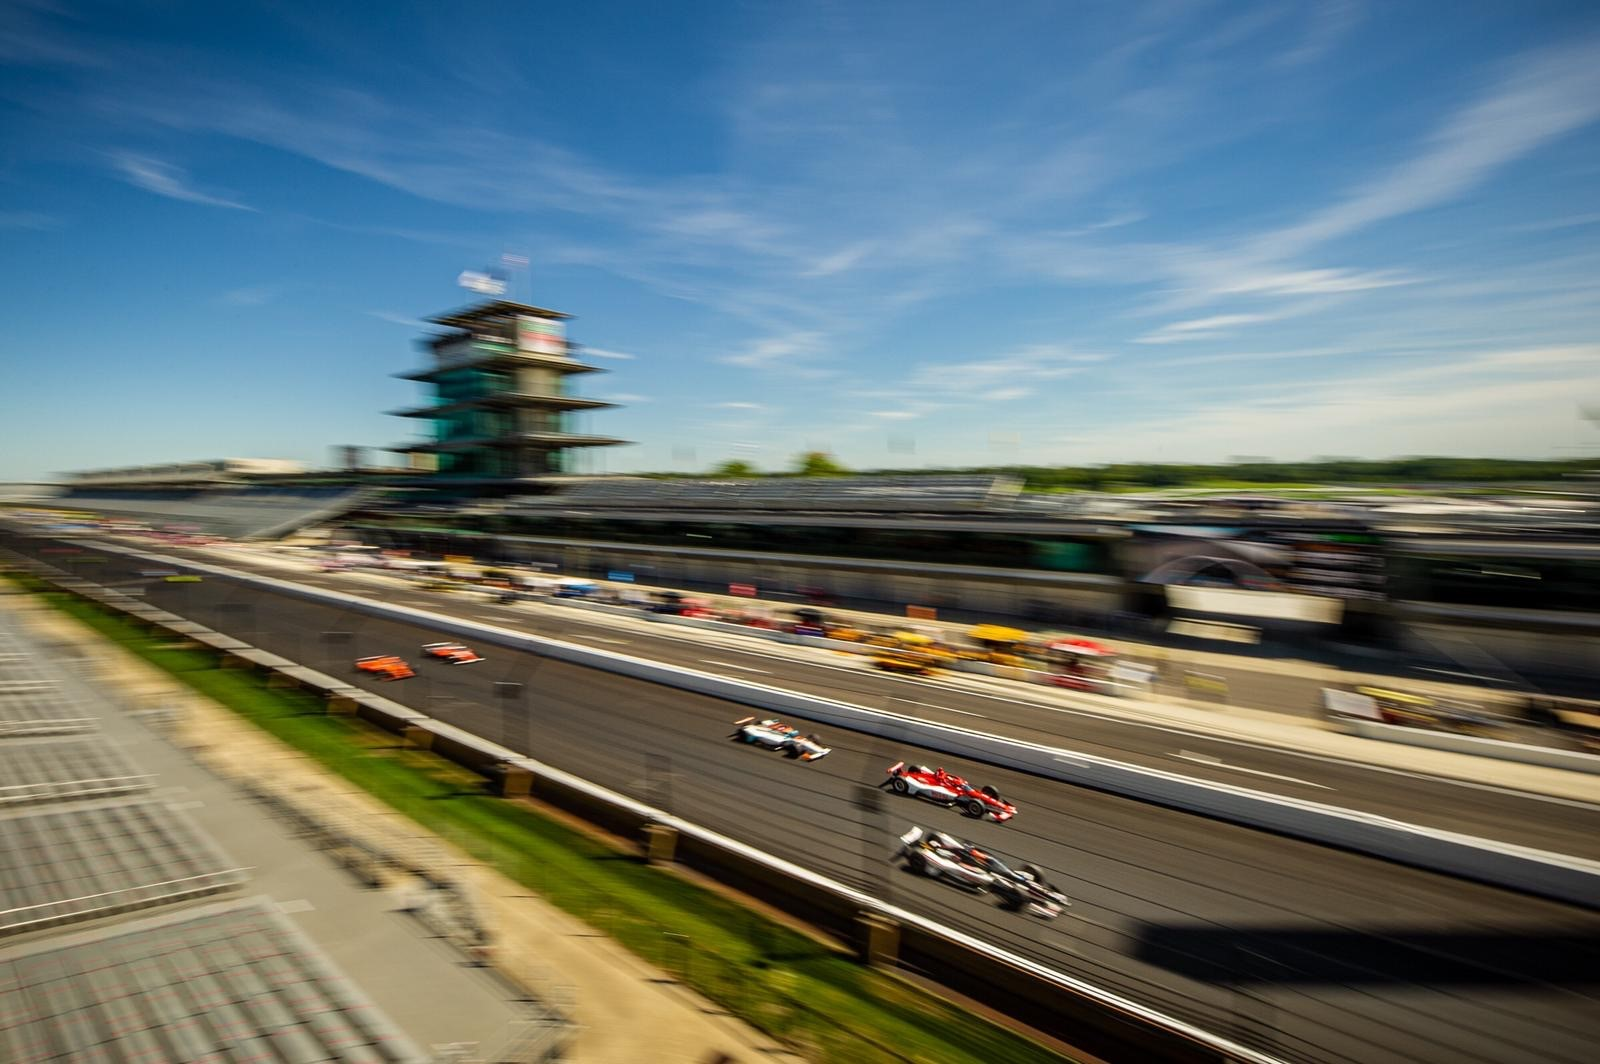 Rinus Veekay finishes his first Indy 500 - Overtake